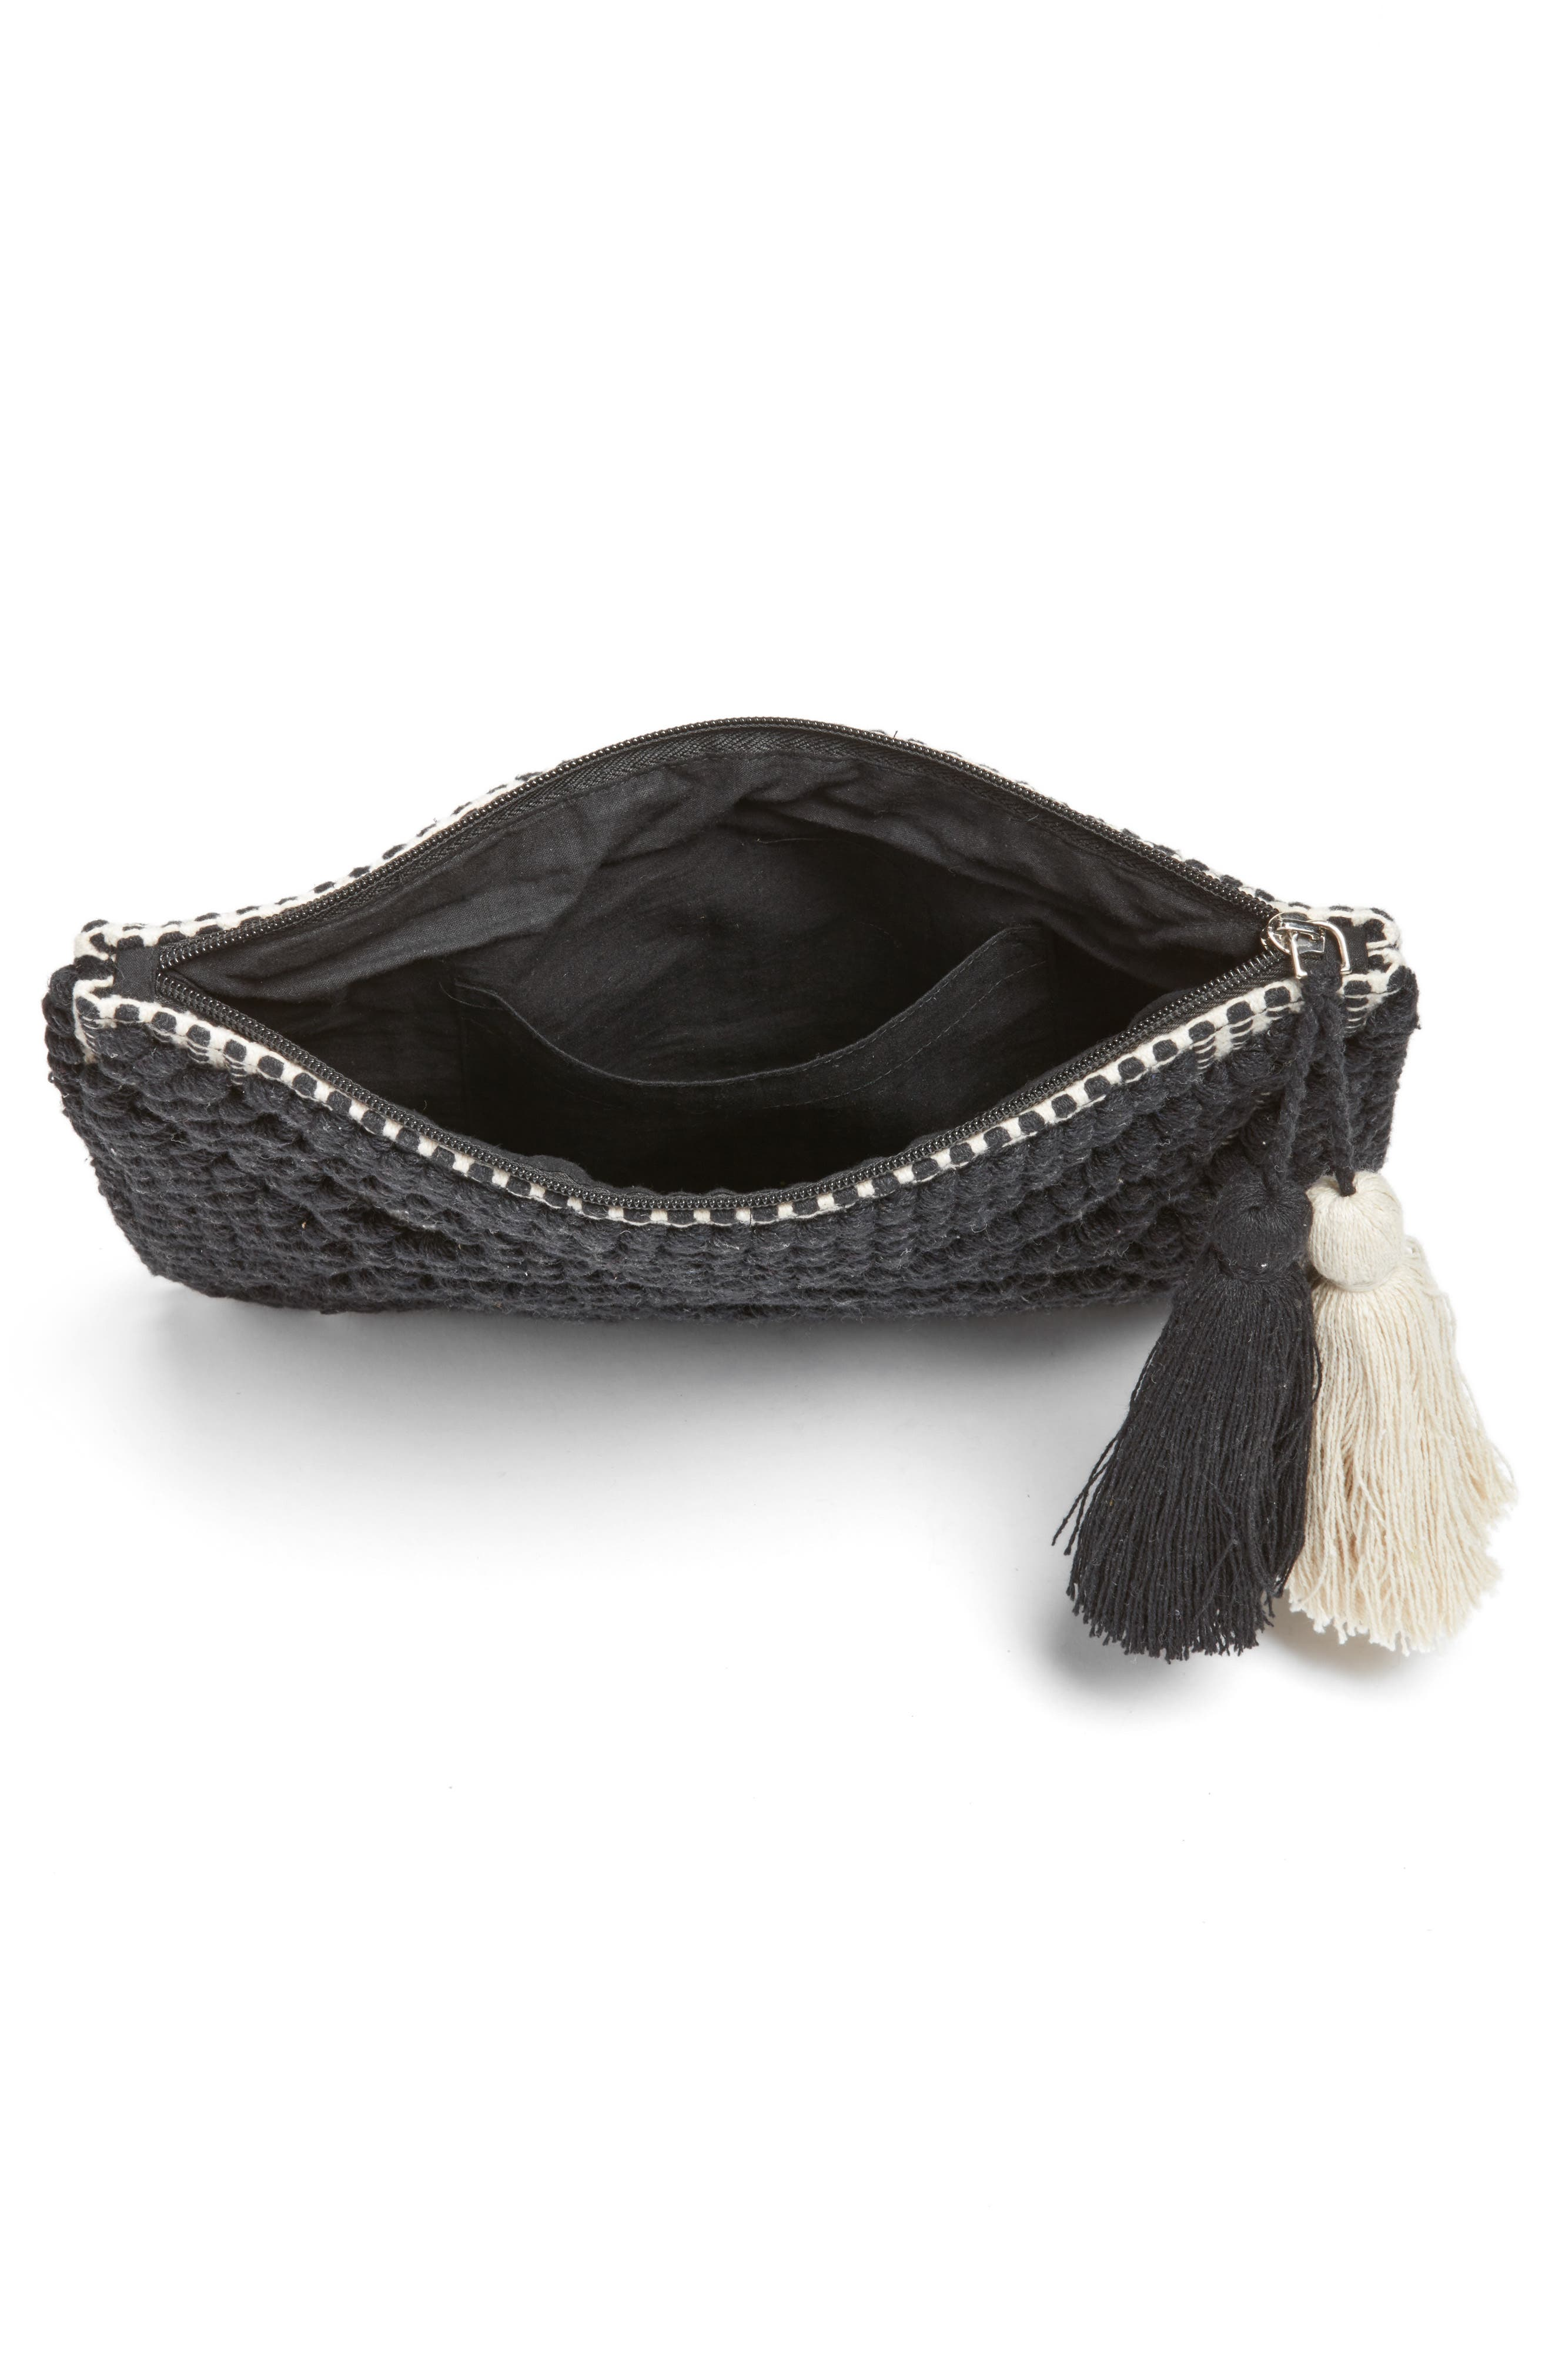 Palisades Tasseled Woven Clutch,                             Alternate thumbnail 22, color,